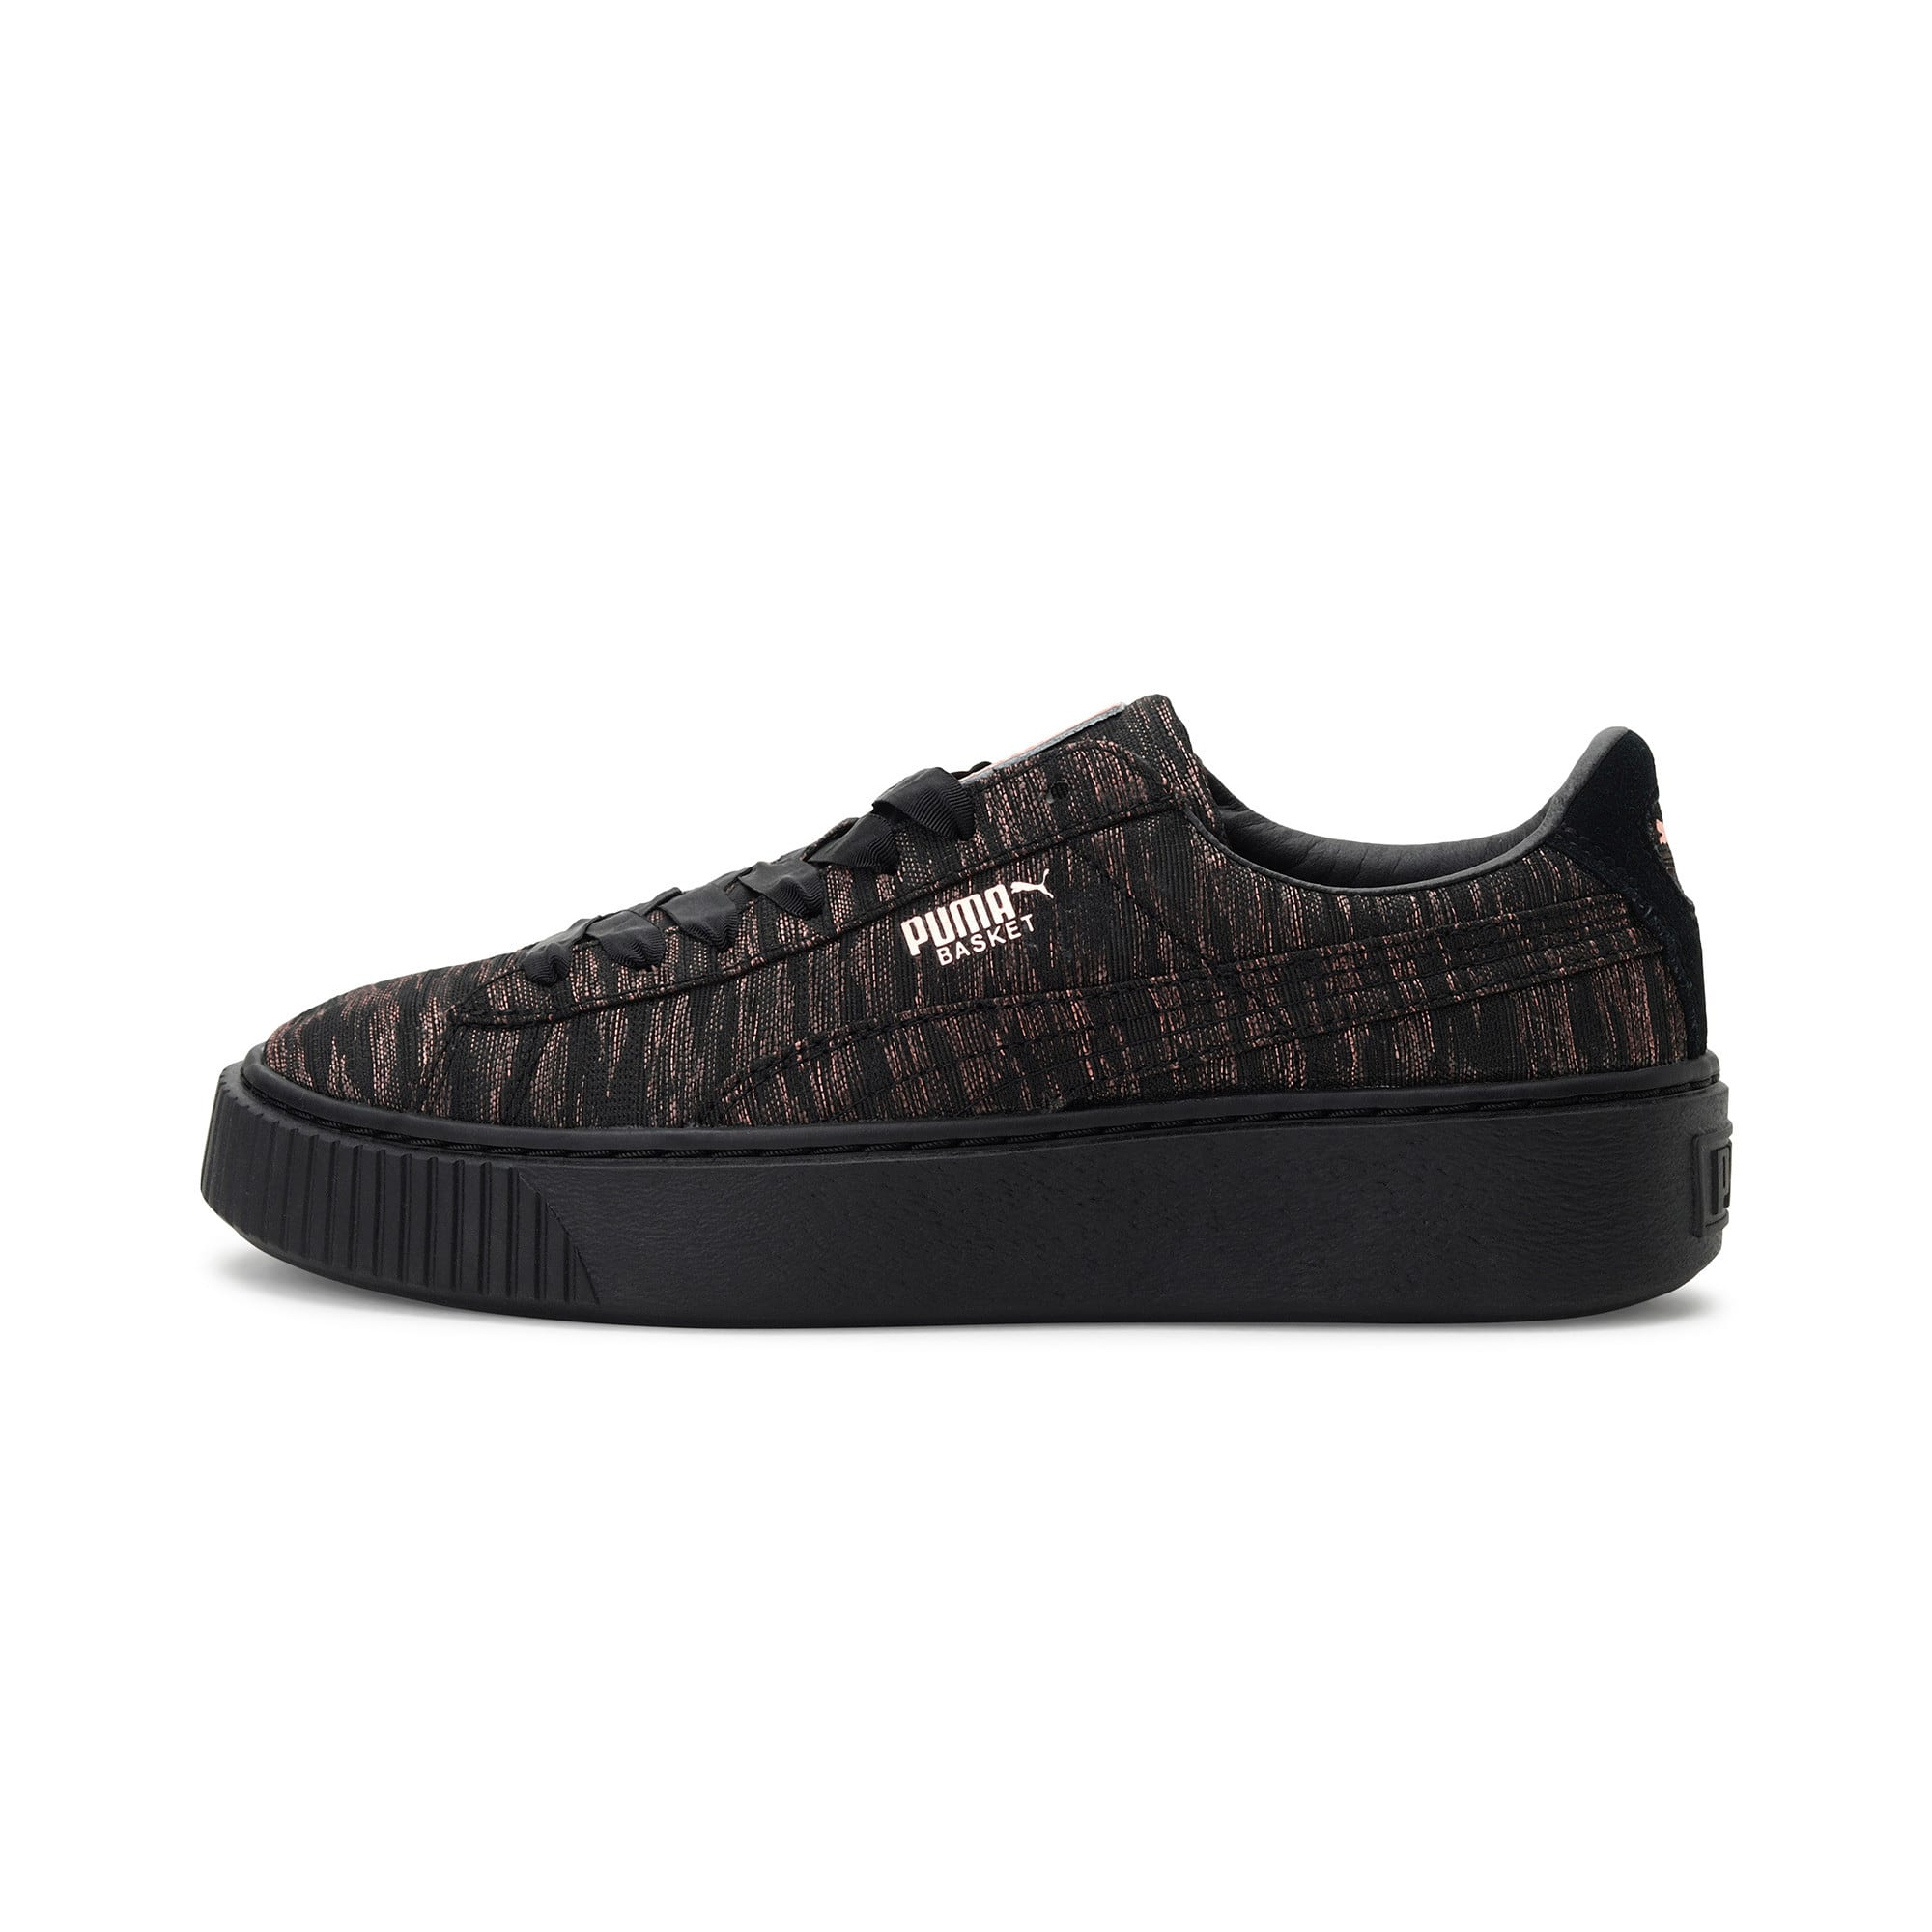 Thumbnail 1 of Basket Platform Velvet Rope Women's Trainers, Puma Black-Puma Black, medium-IND